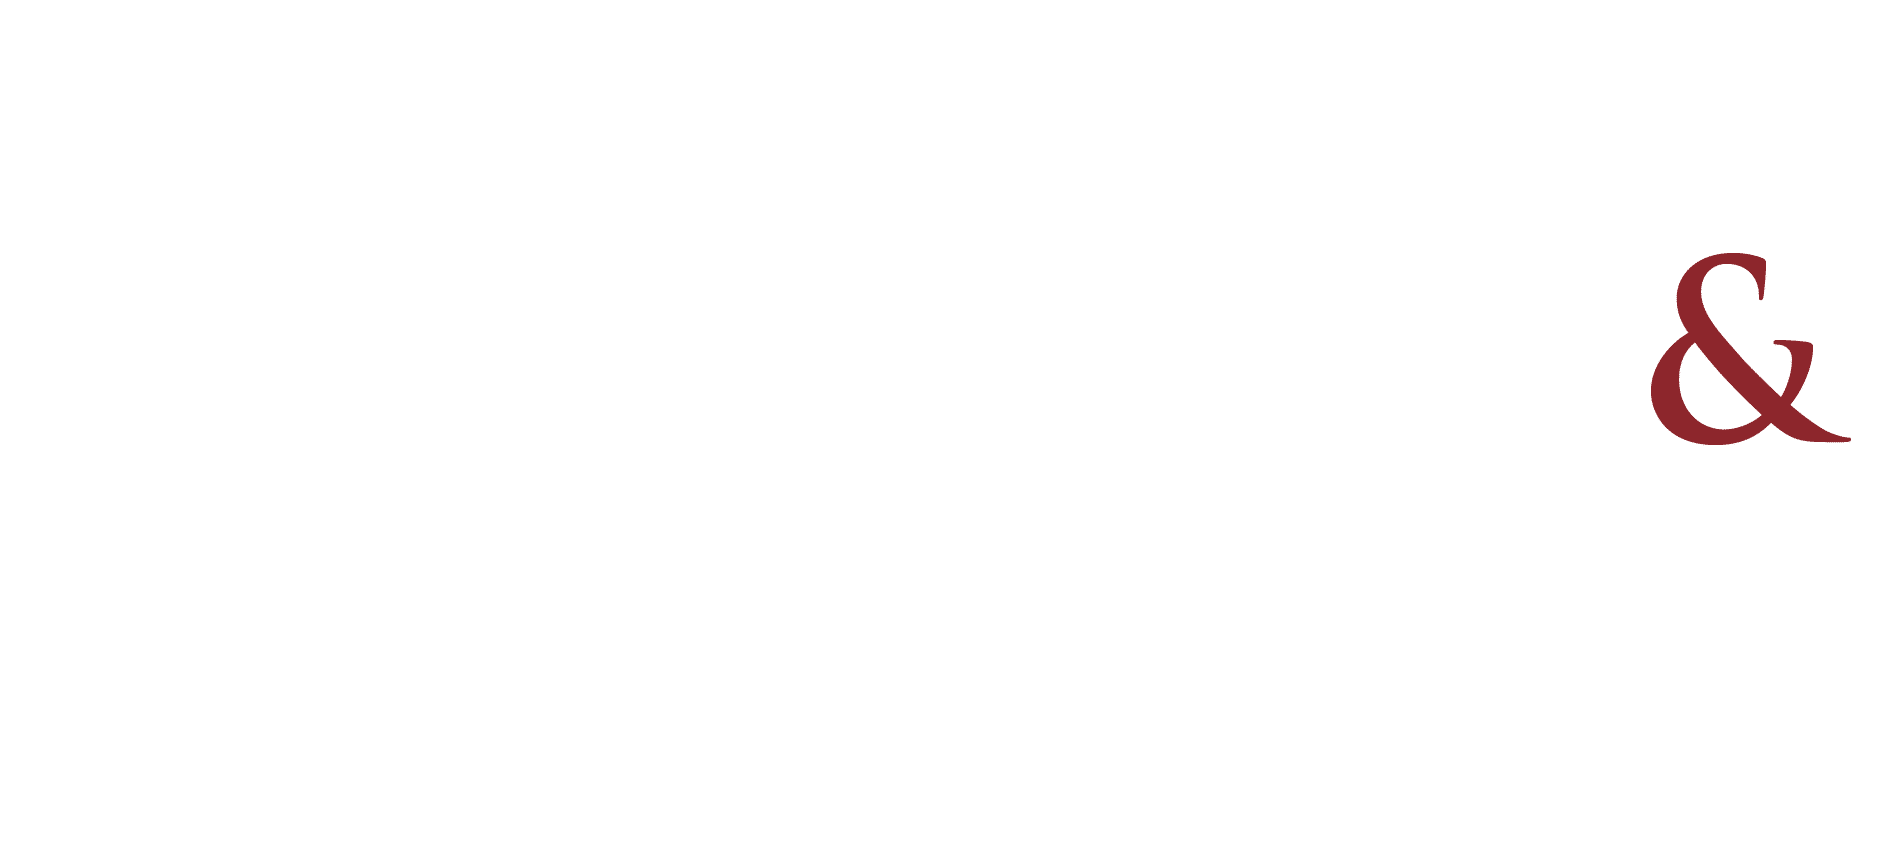 Furniture Store Interior Design Nw Home Interiors Bend Or